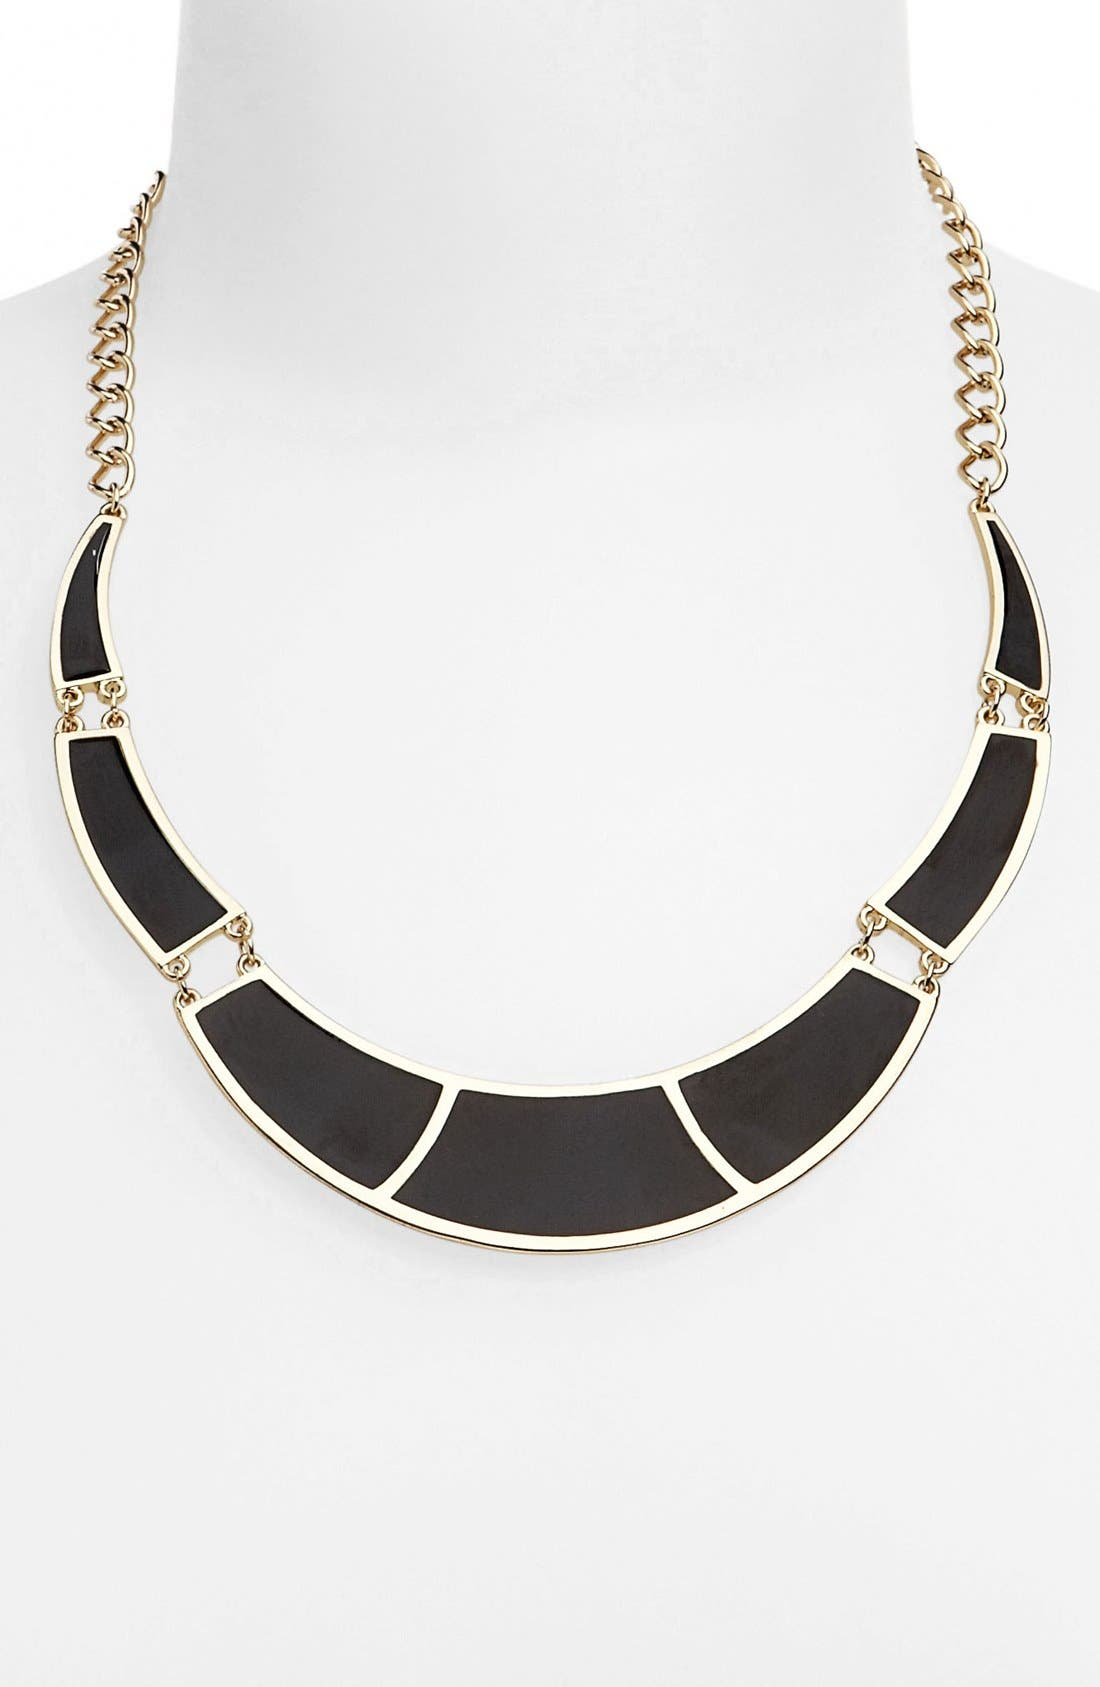 Alternate Image 1 Selected - Carole Collar Necklace (Online Exclusive)